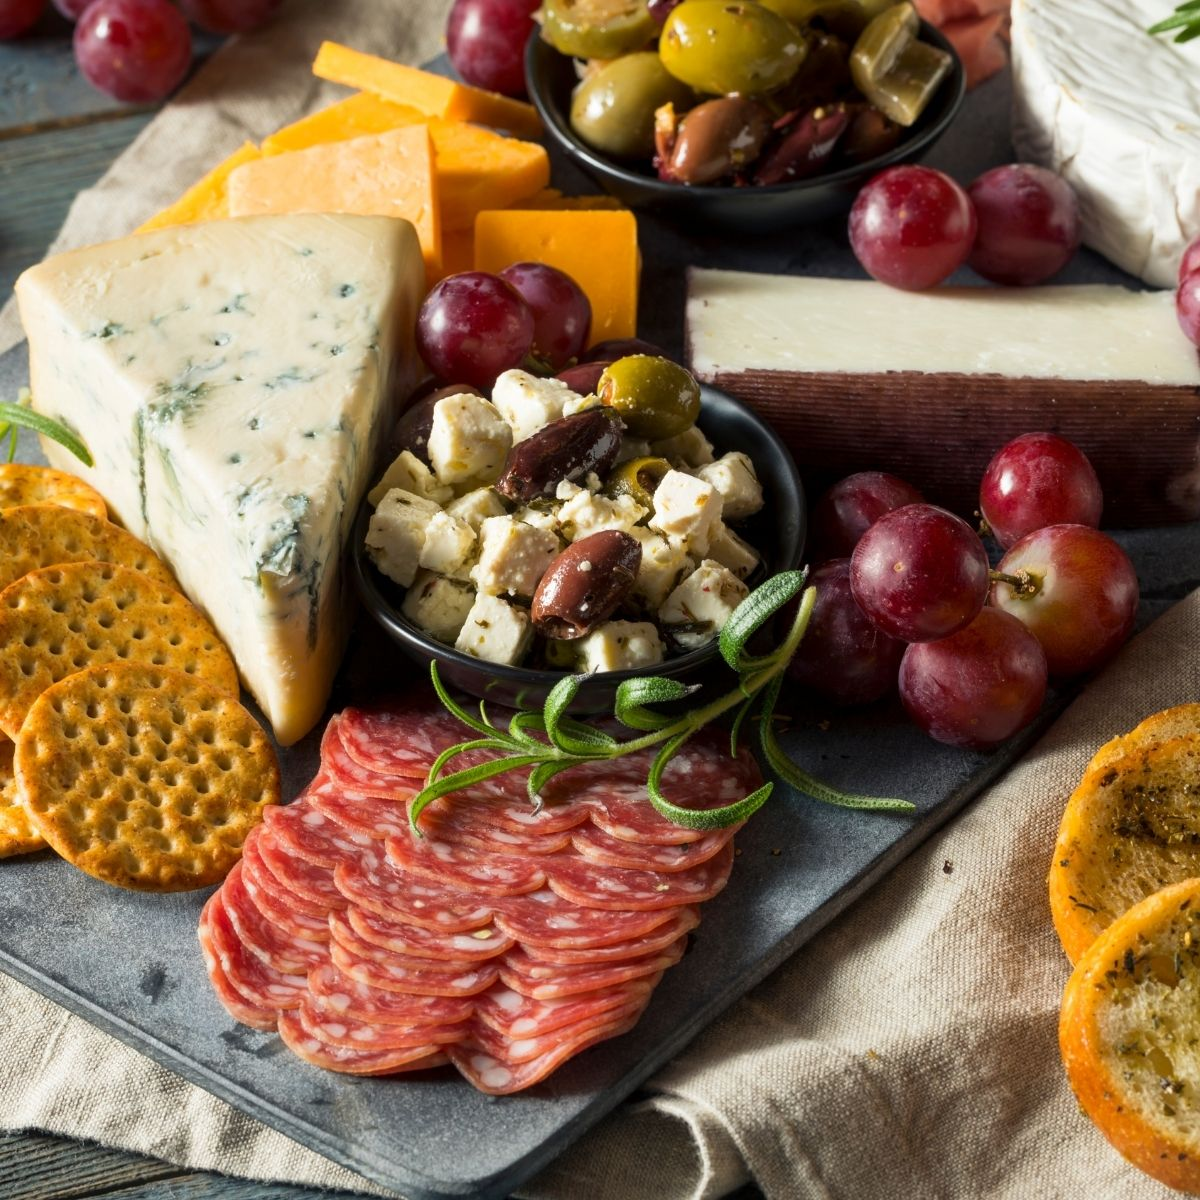 Easy Charcuterie Board Ideas - Slate Platter with olives cheese, crackers, salami,